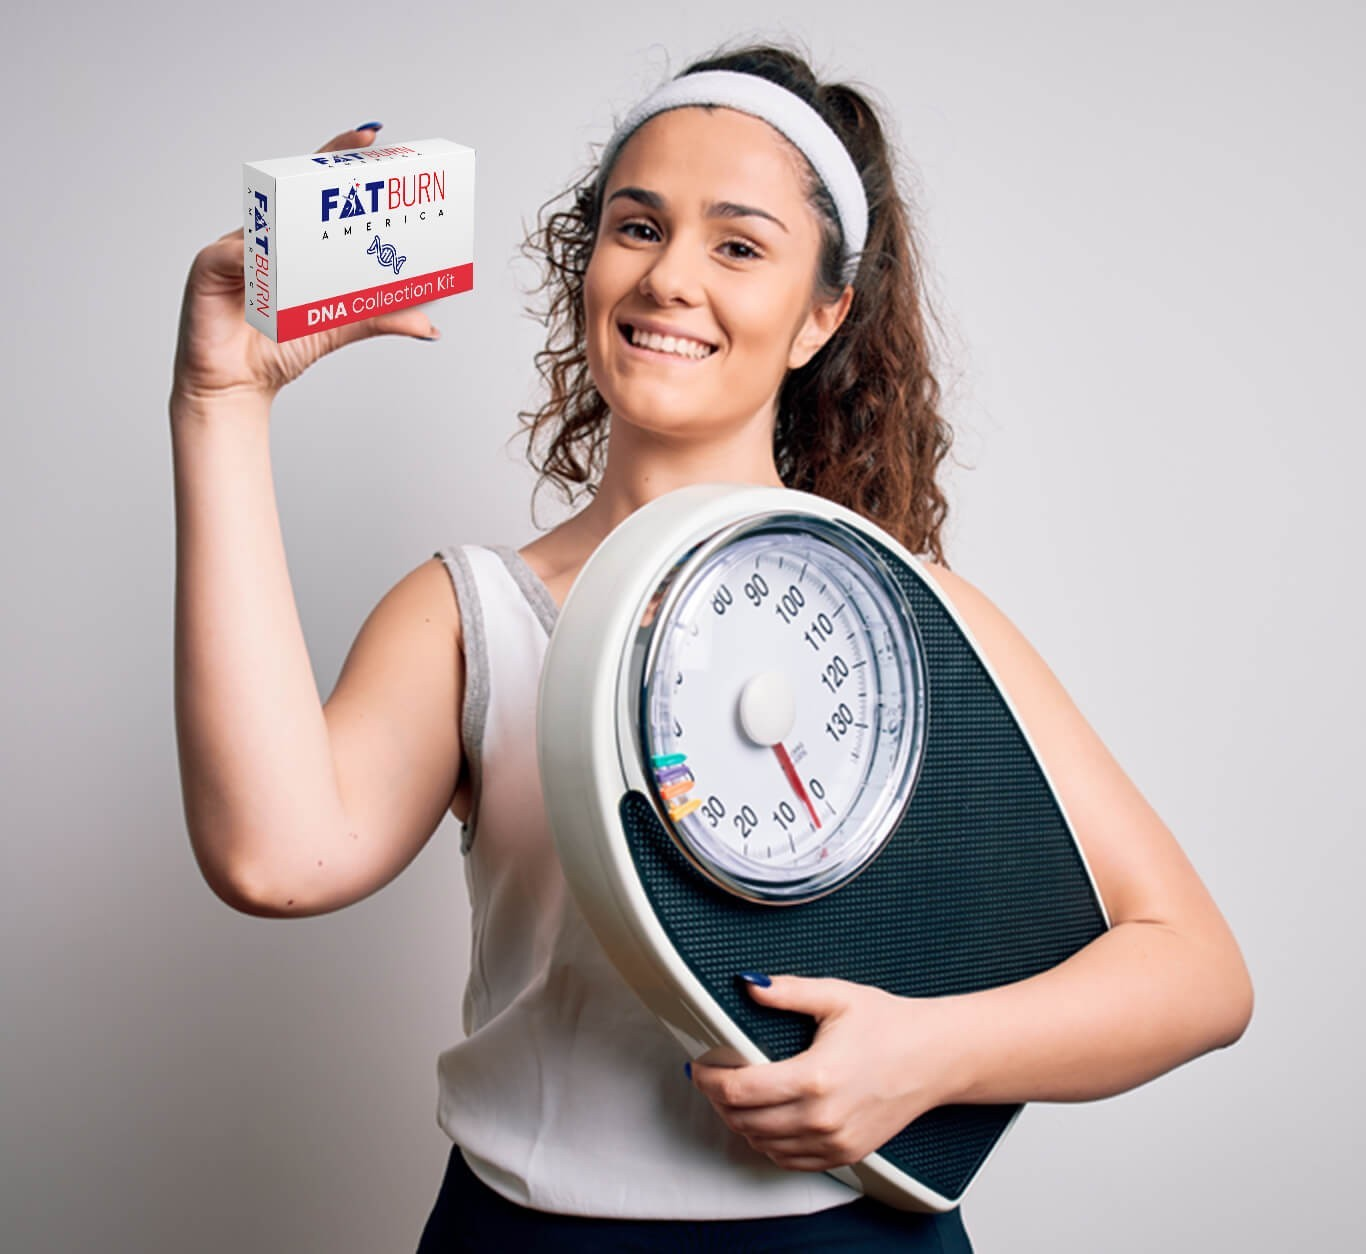 DNA Based Weight Loss Programs | Online Weight Loss Programs